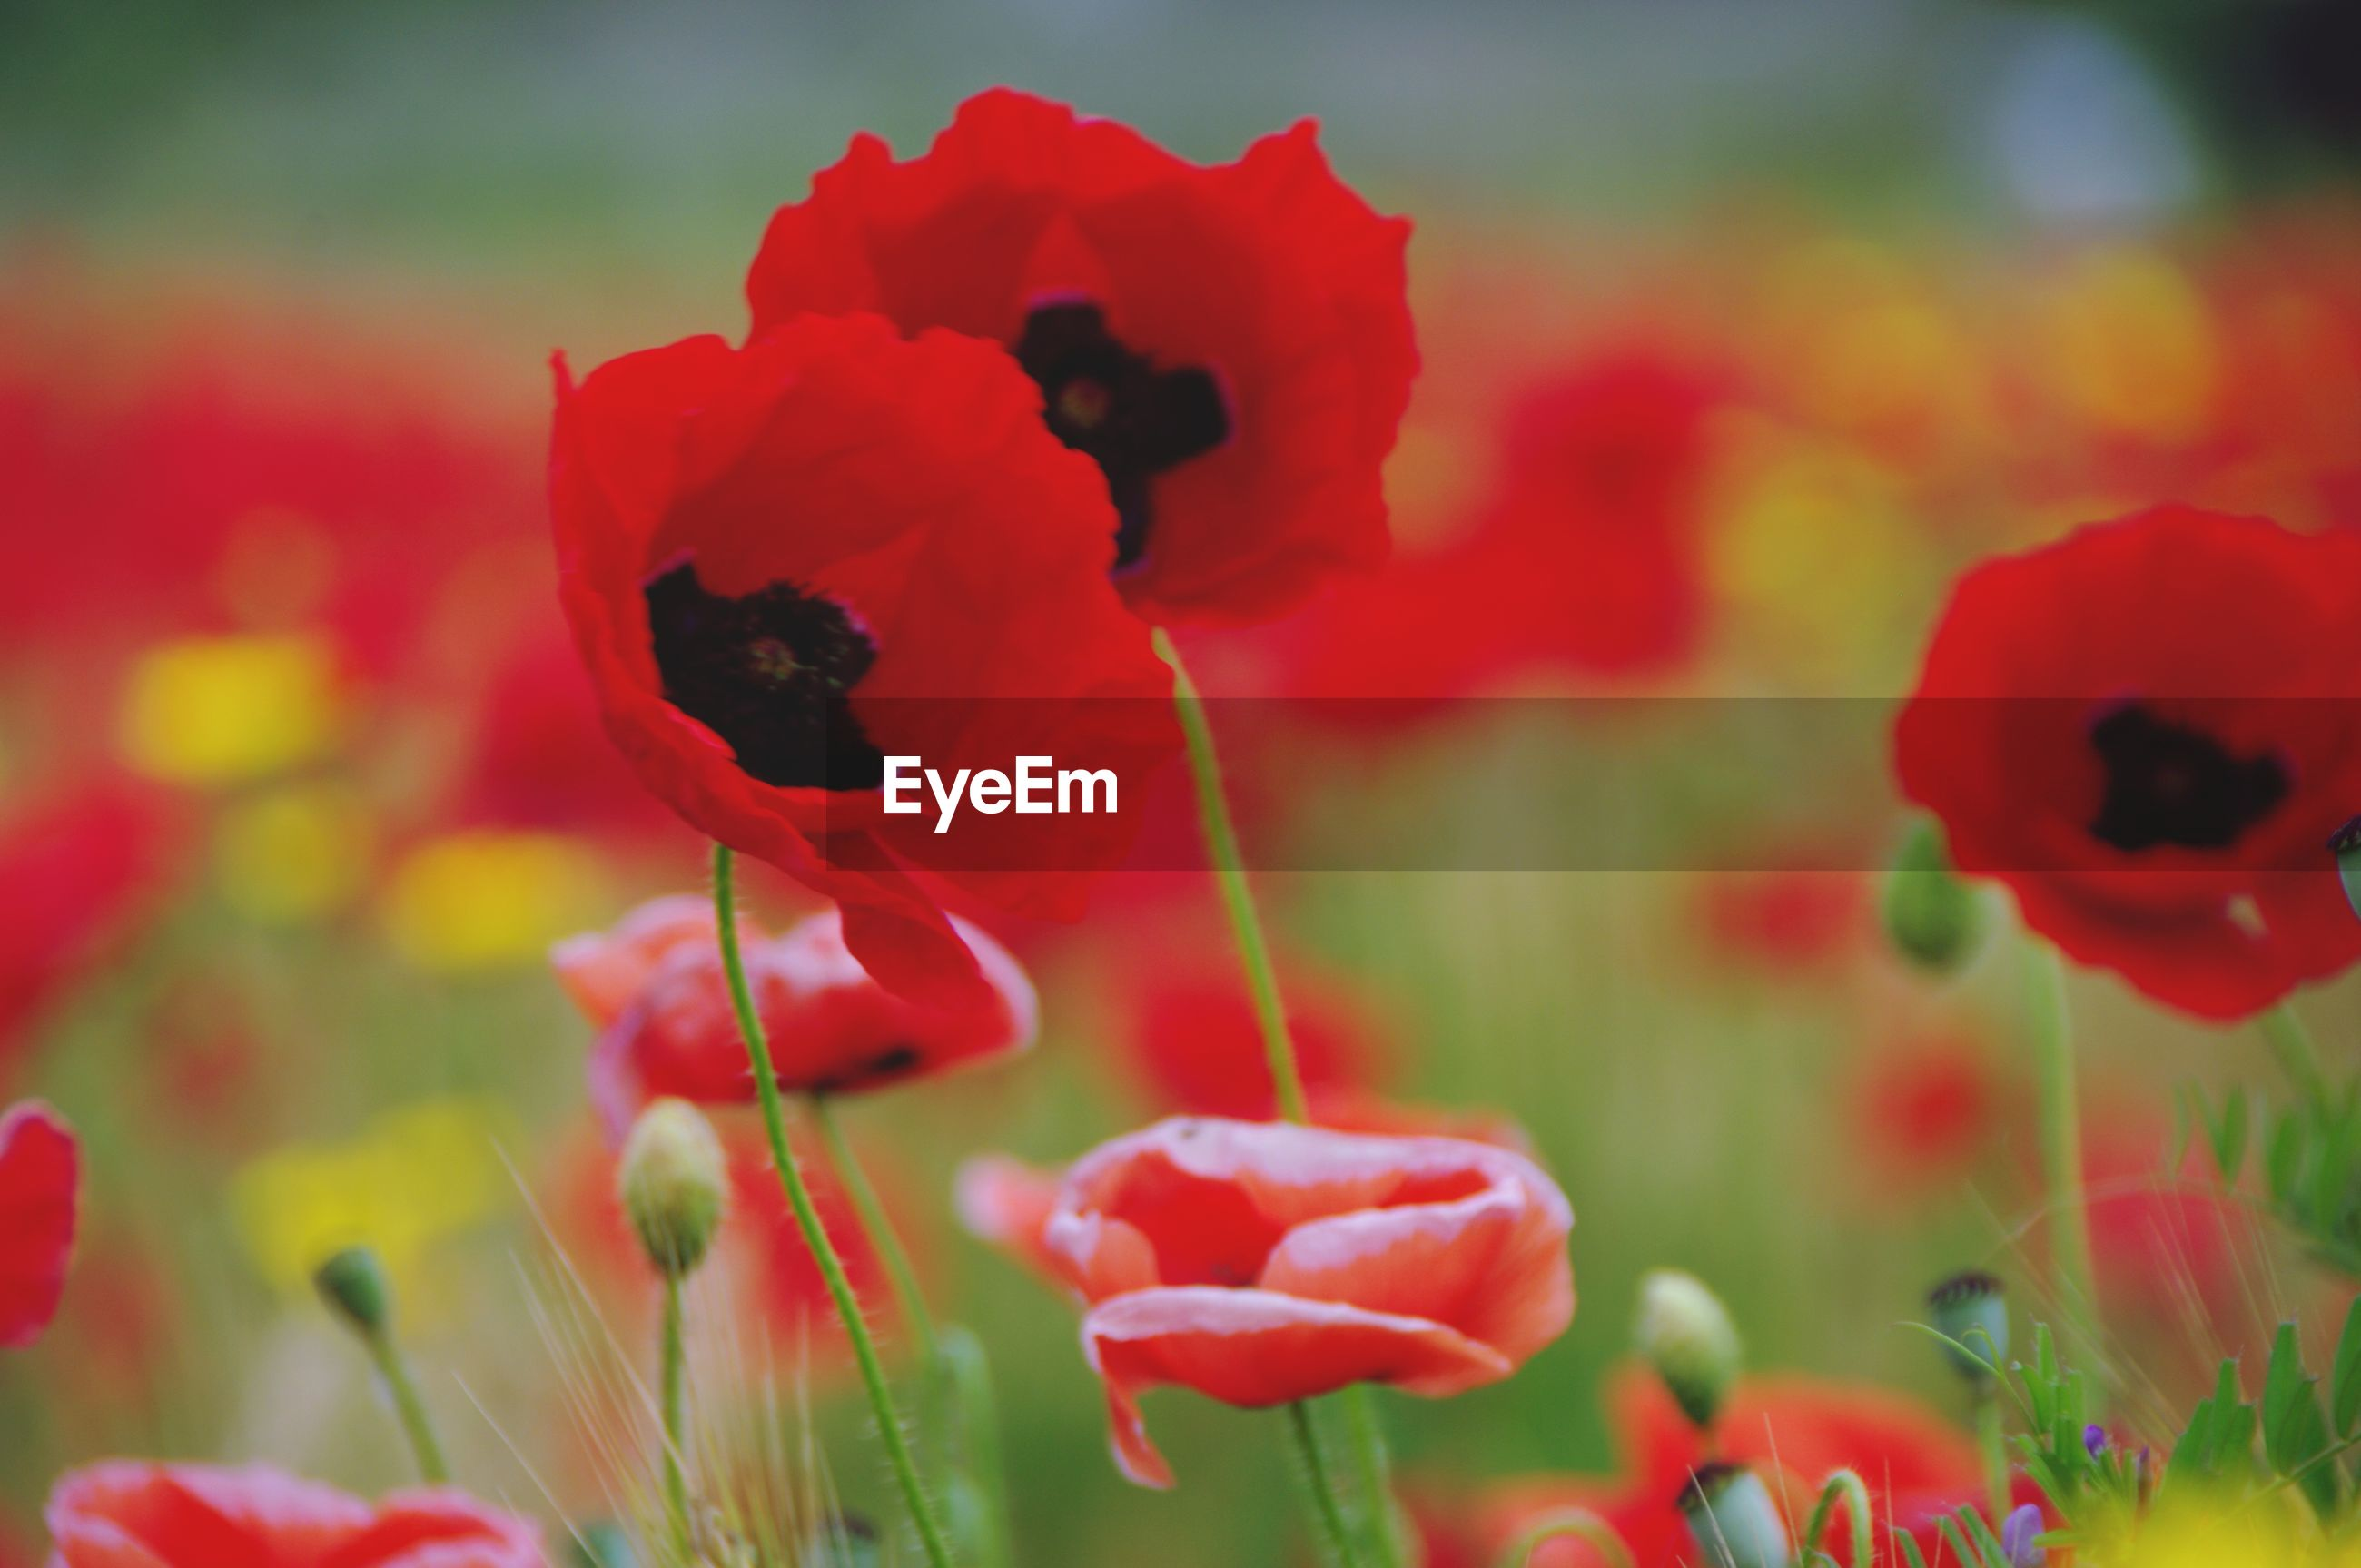 CLOSE-UP OF RED POPPY FLOWERS GROWING ON FIELD